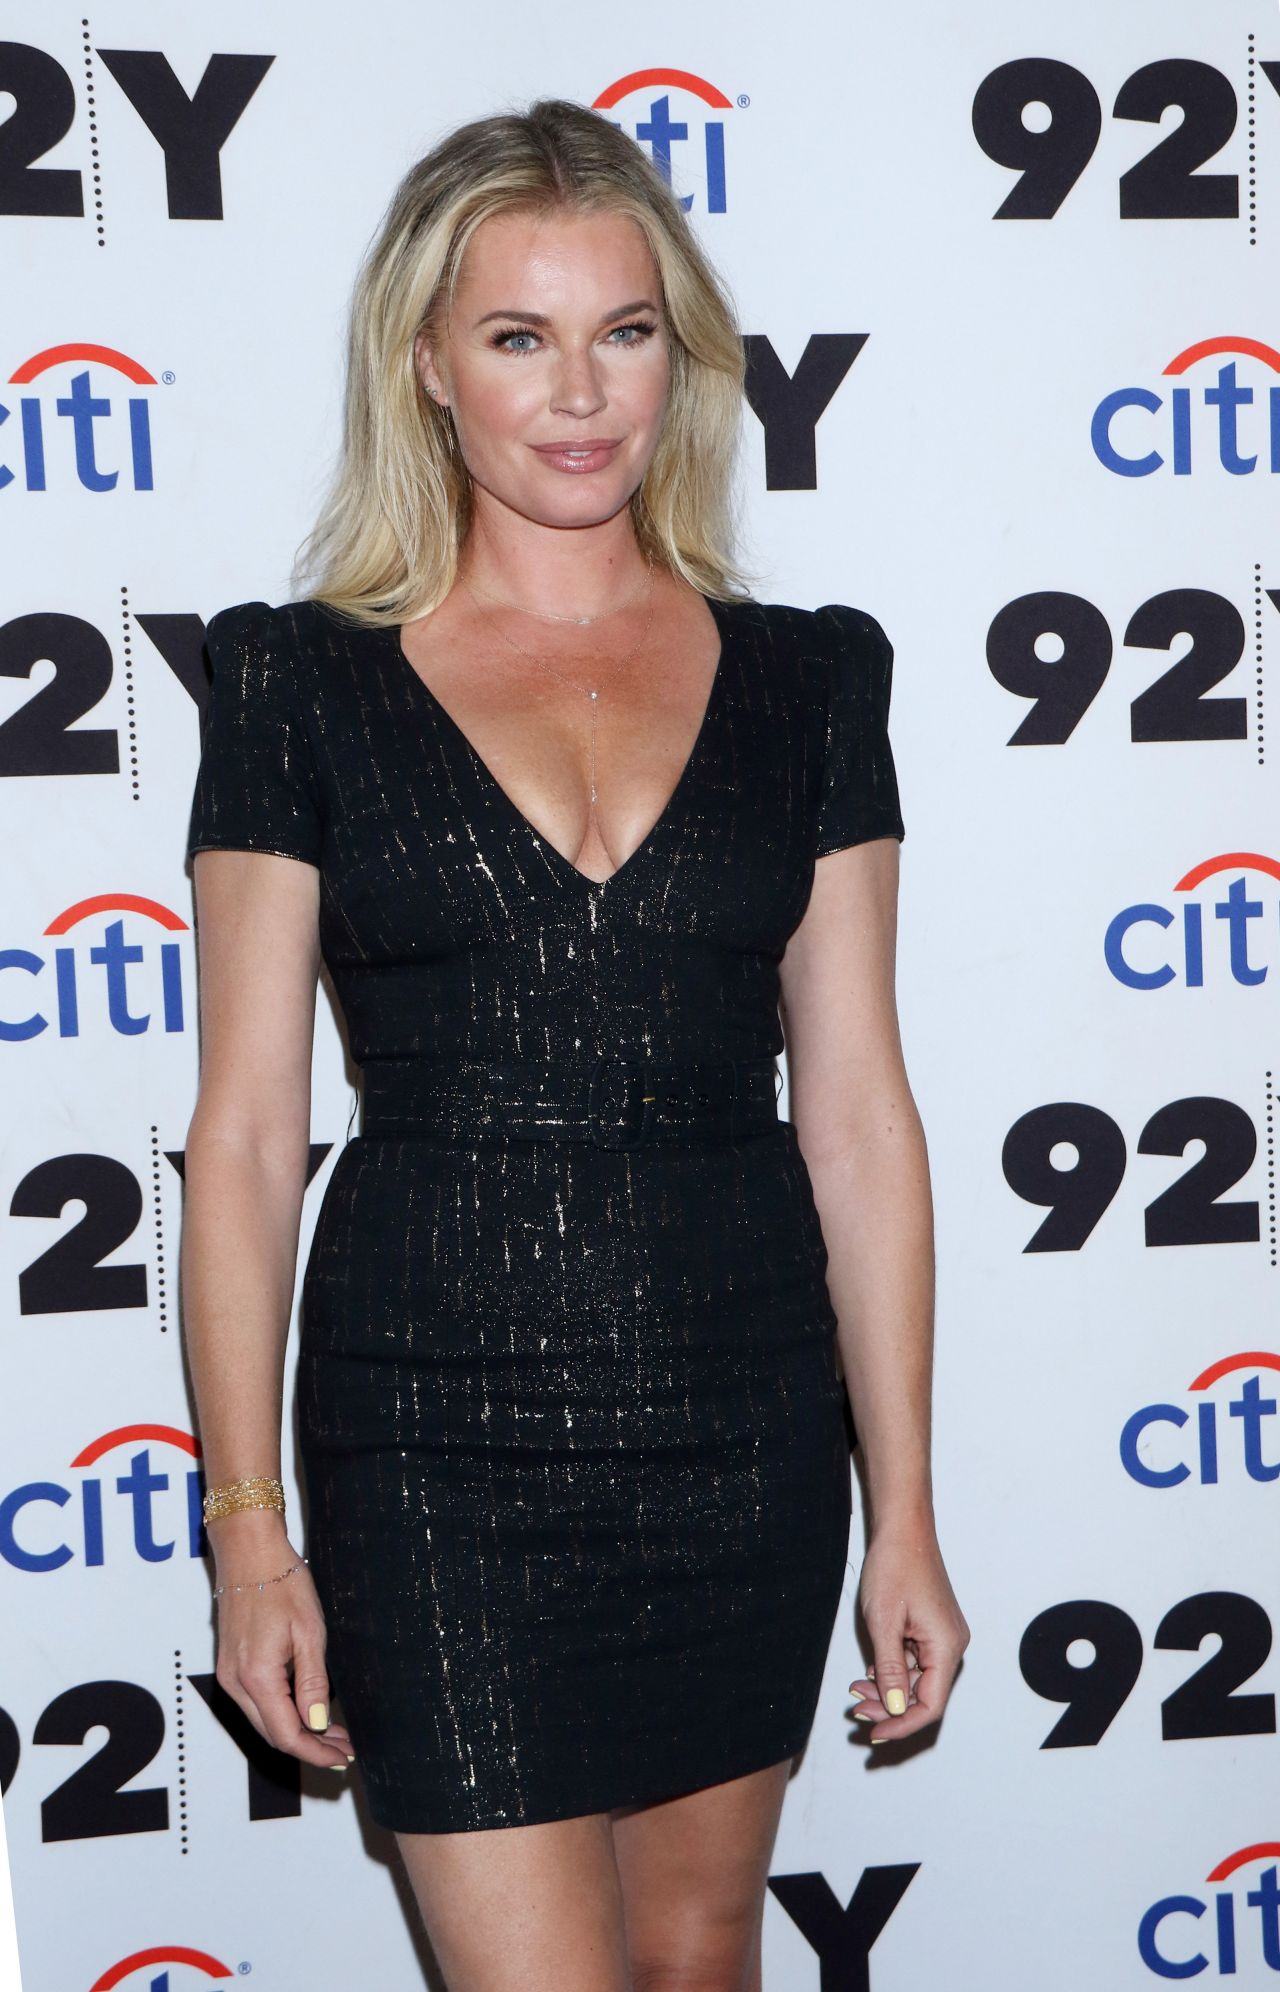 Rebecca Romijn Fucking Stunning In Little Black Dress -1756